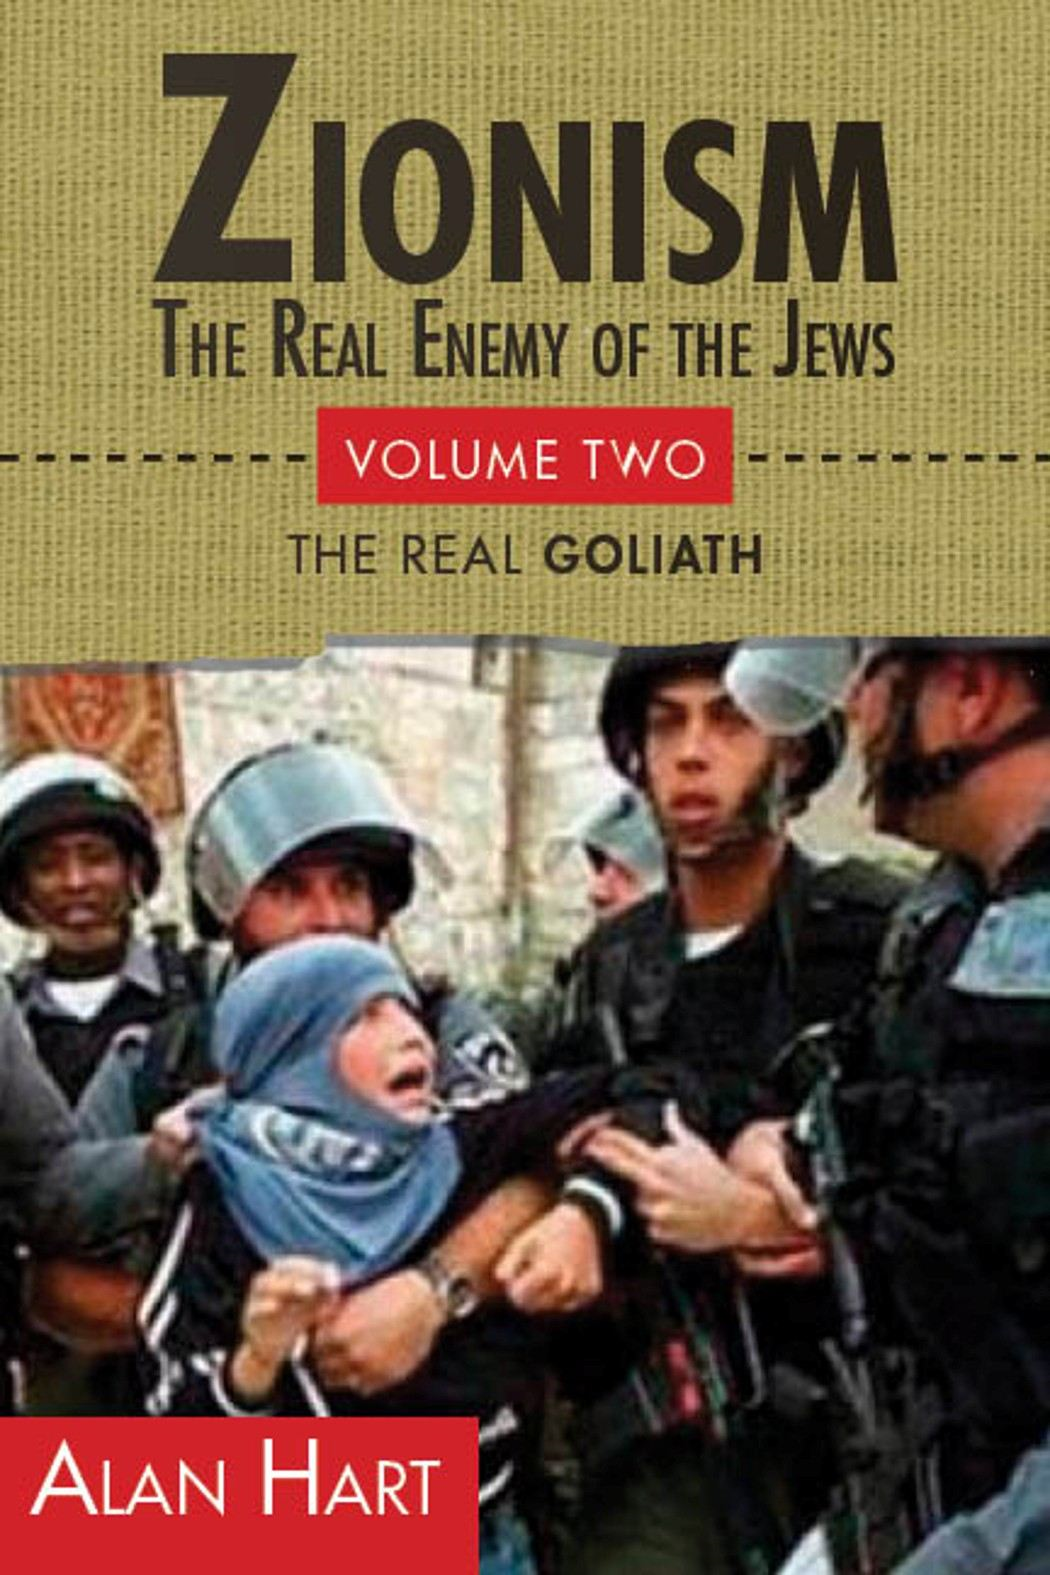 Zionism: The Real Enemy of the Jews, Volume 2 By: Alan Hart